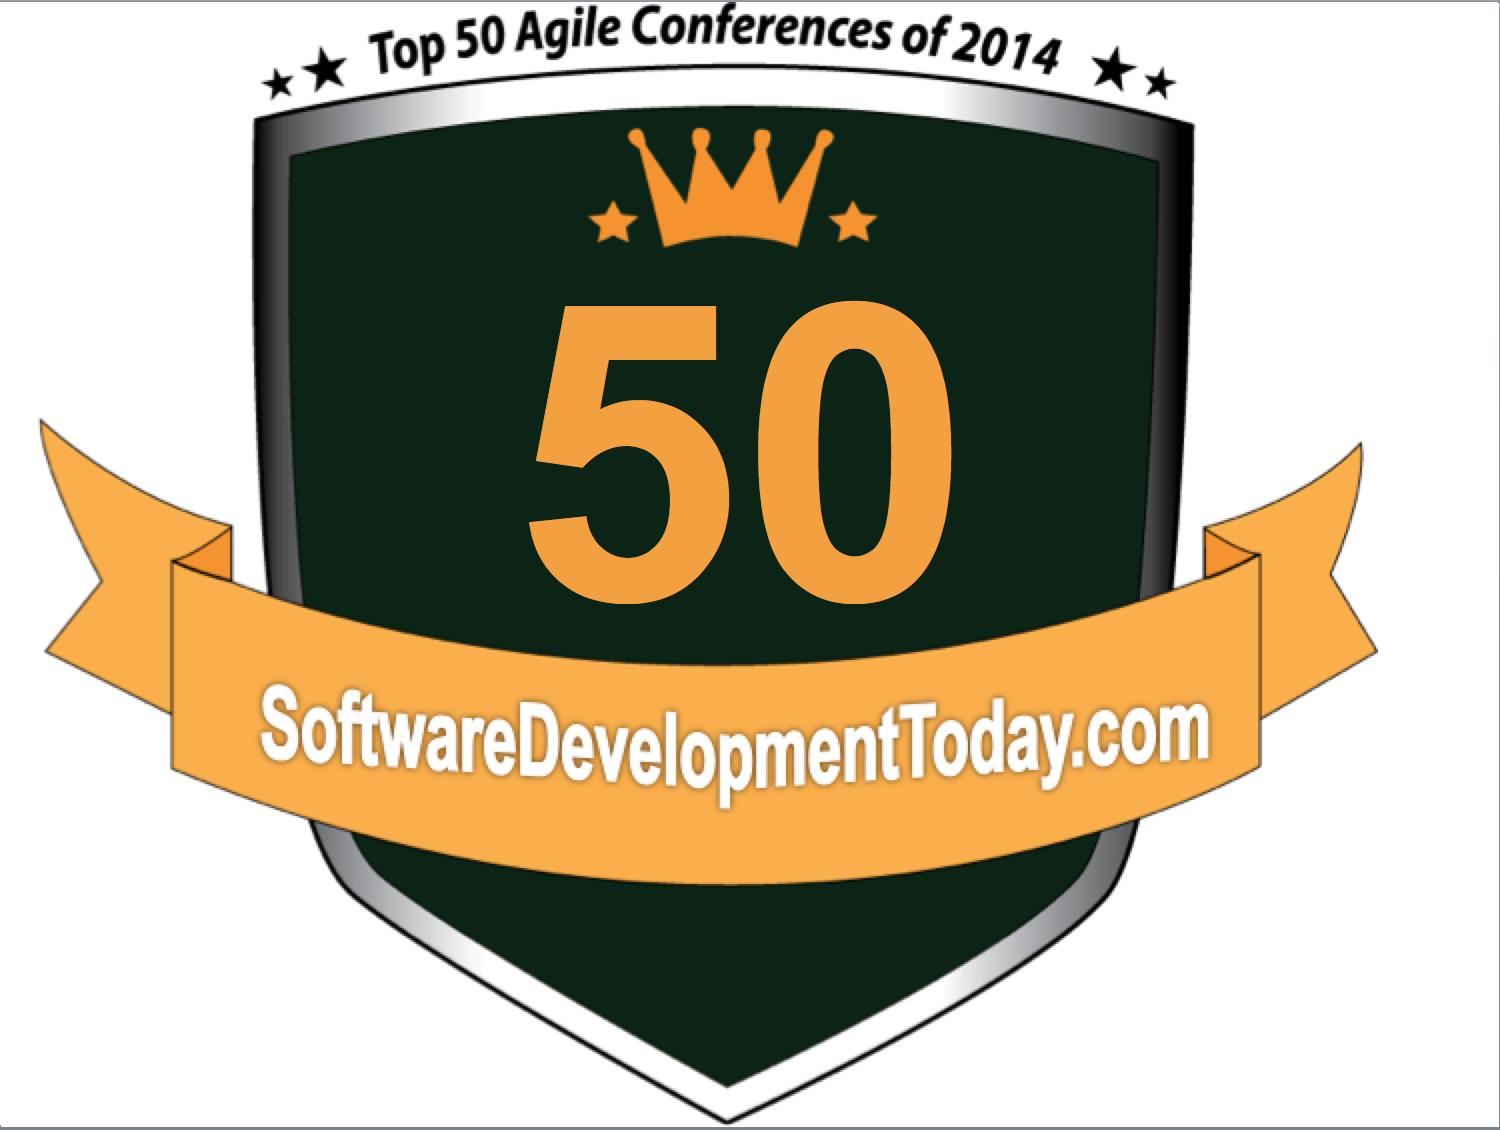 Top 50 Agile Conferences 2014 award